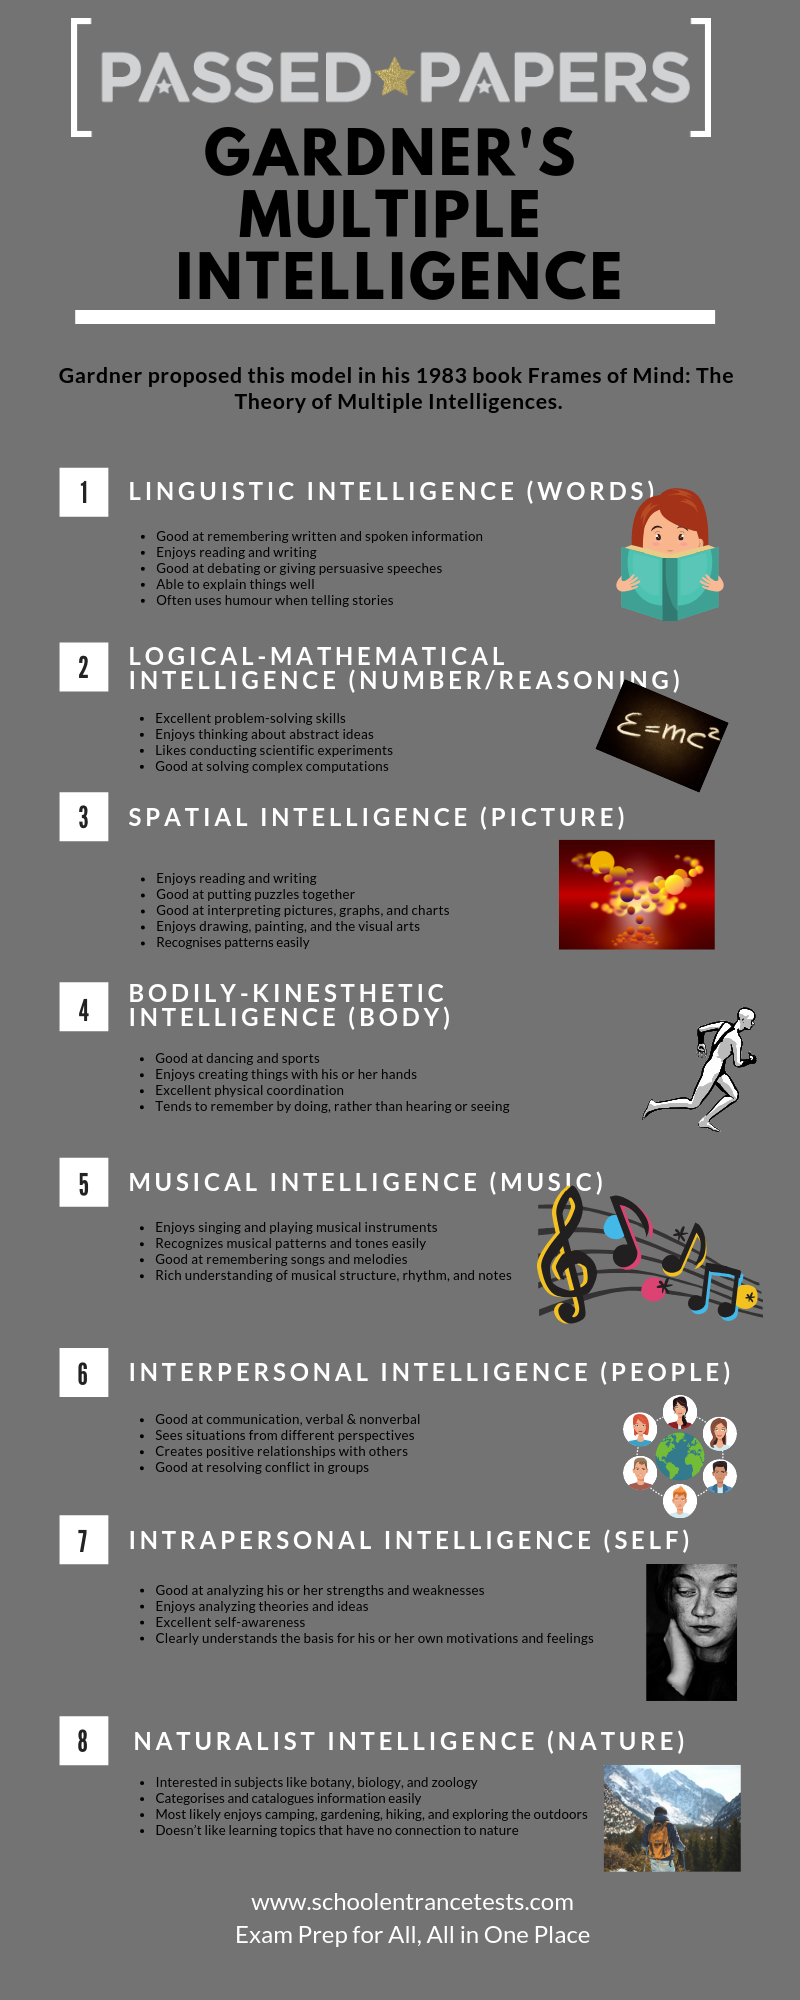 Theory of multiple intelligence infographic